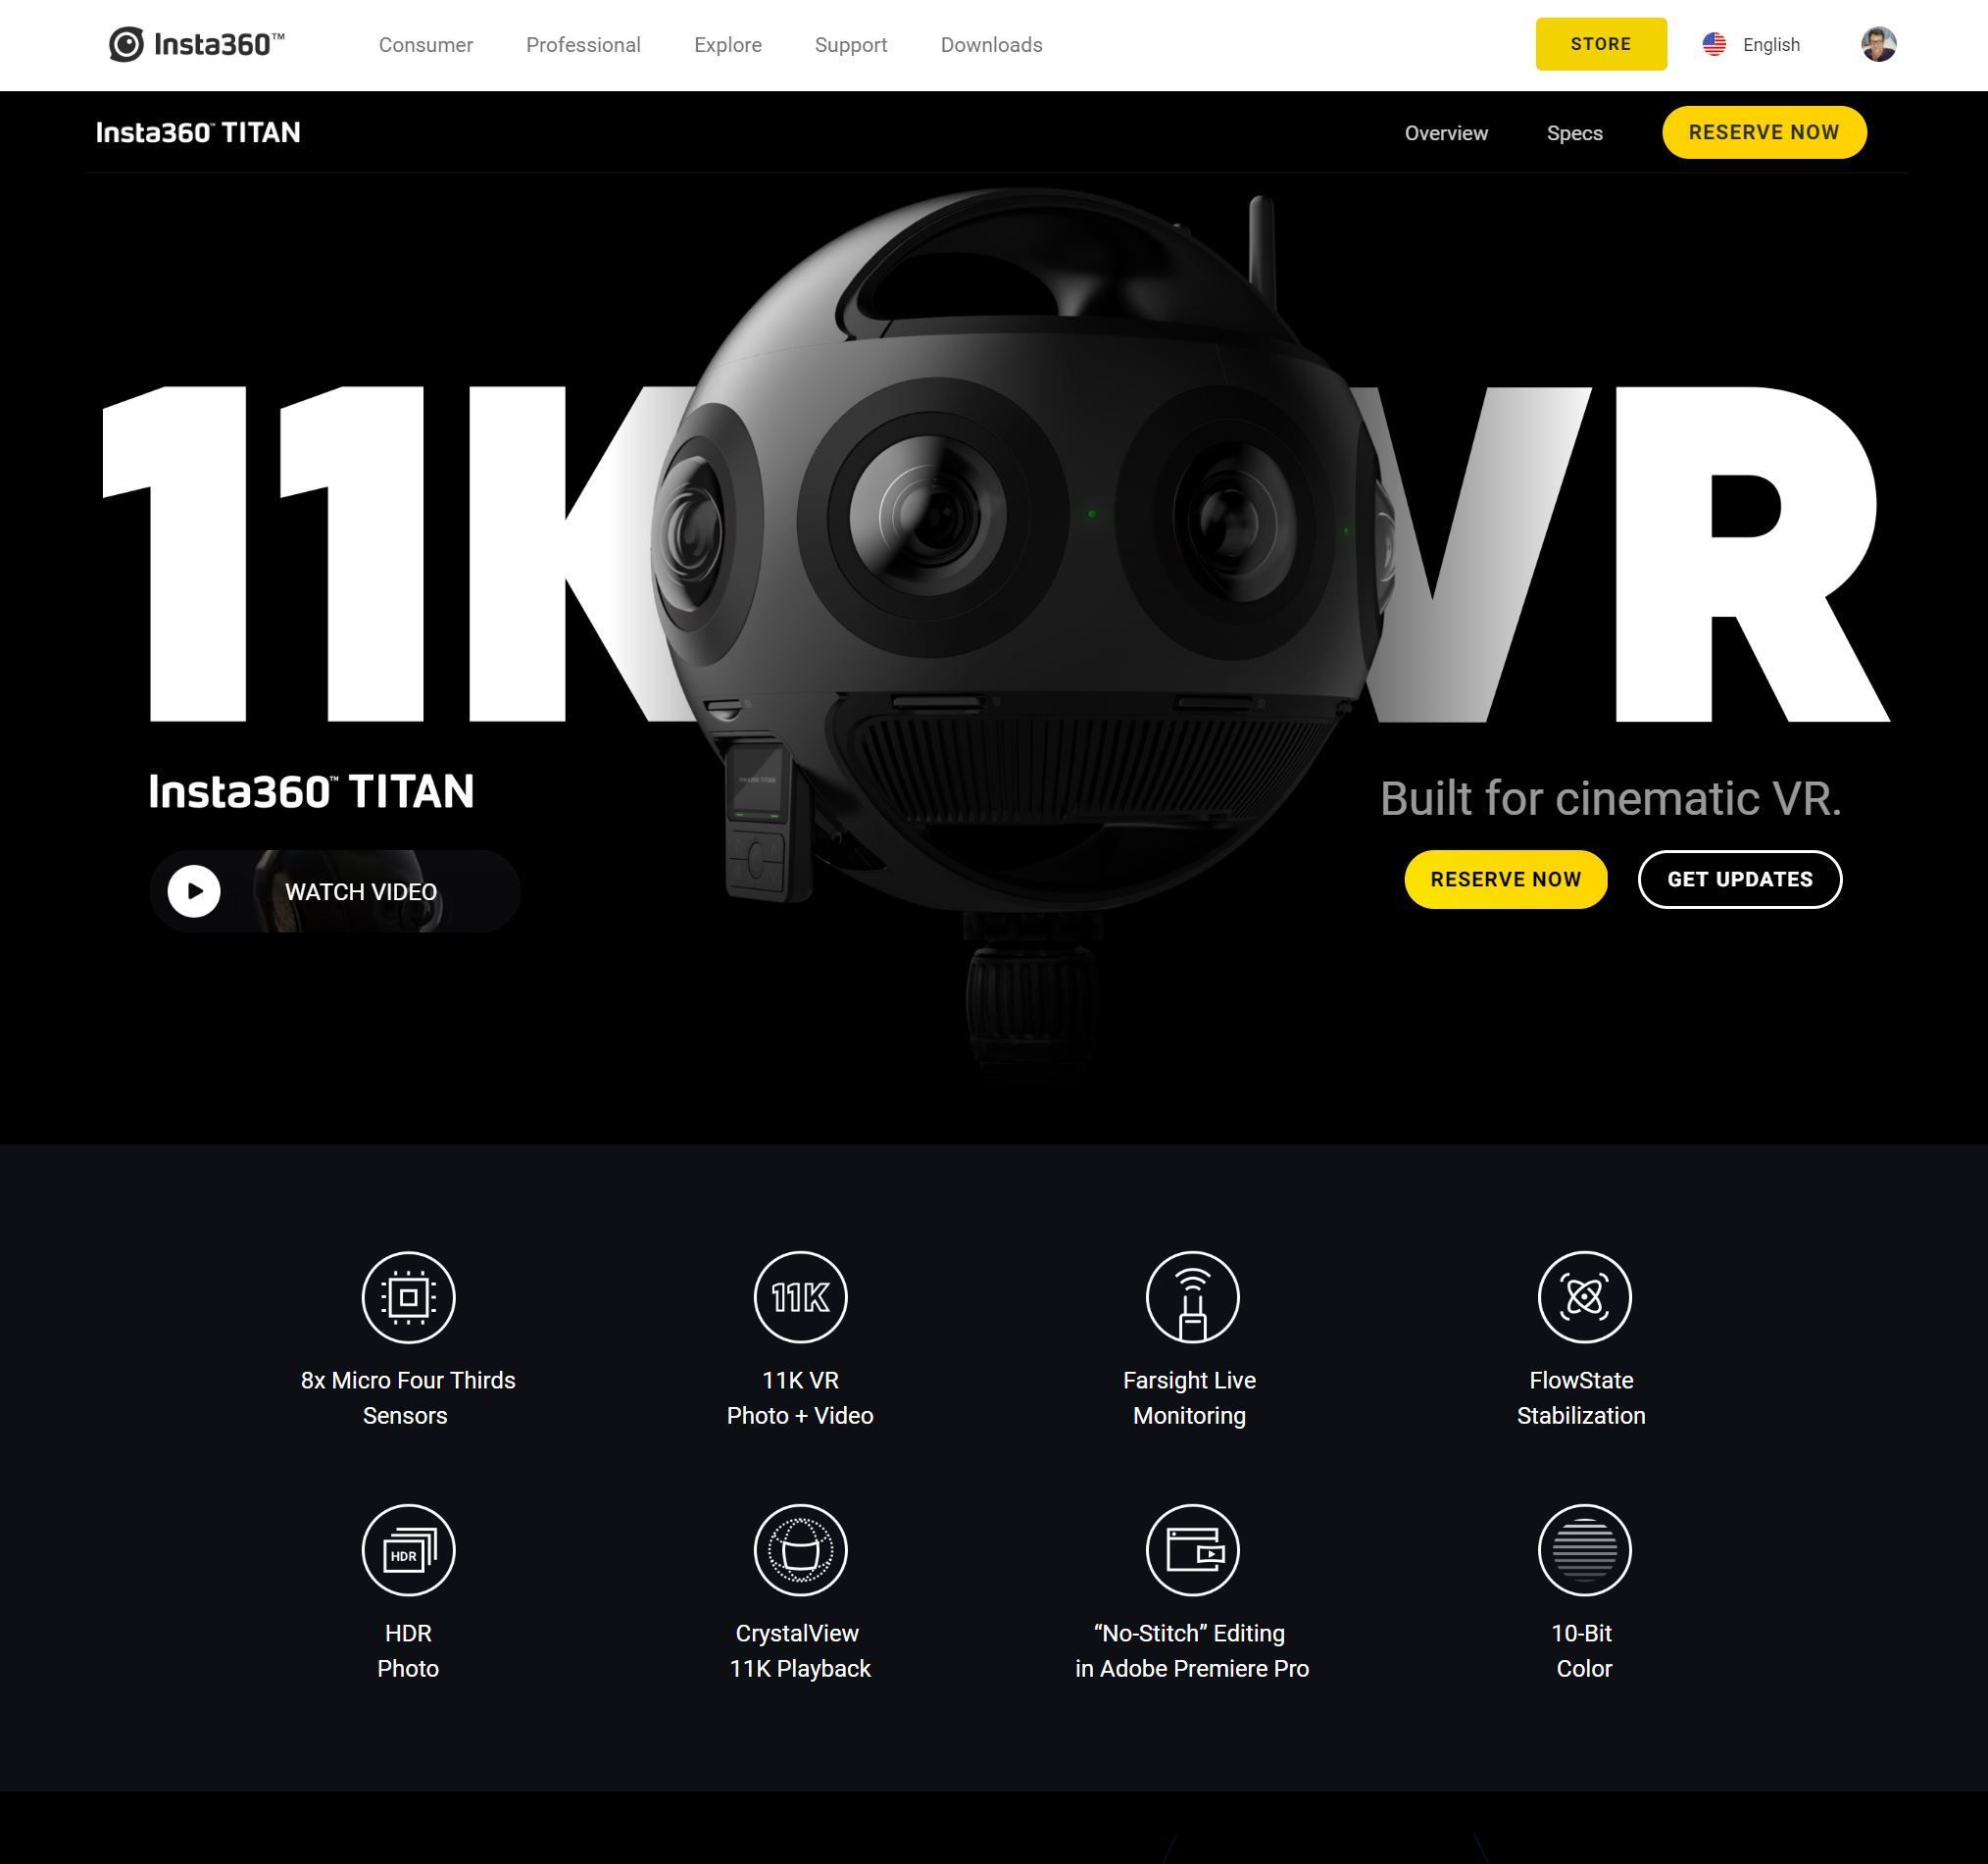 Are you ready for 11K 360 VR??? The TITAN is coming